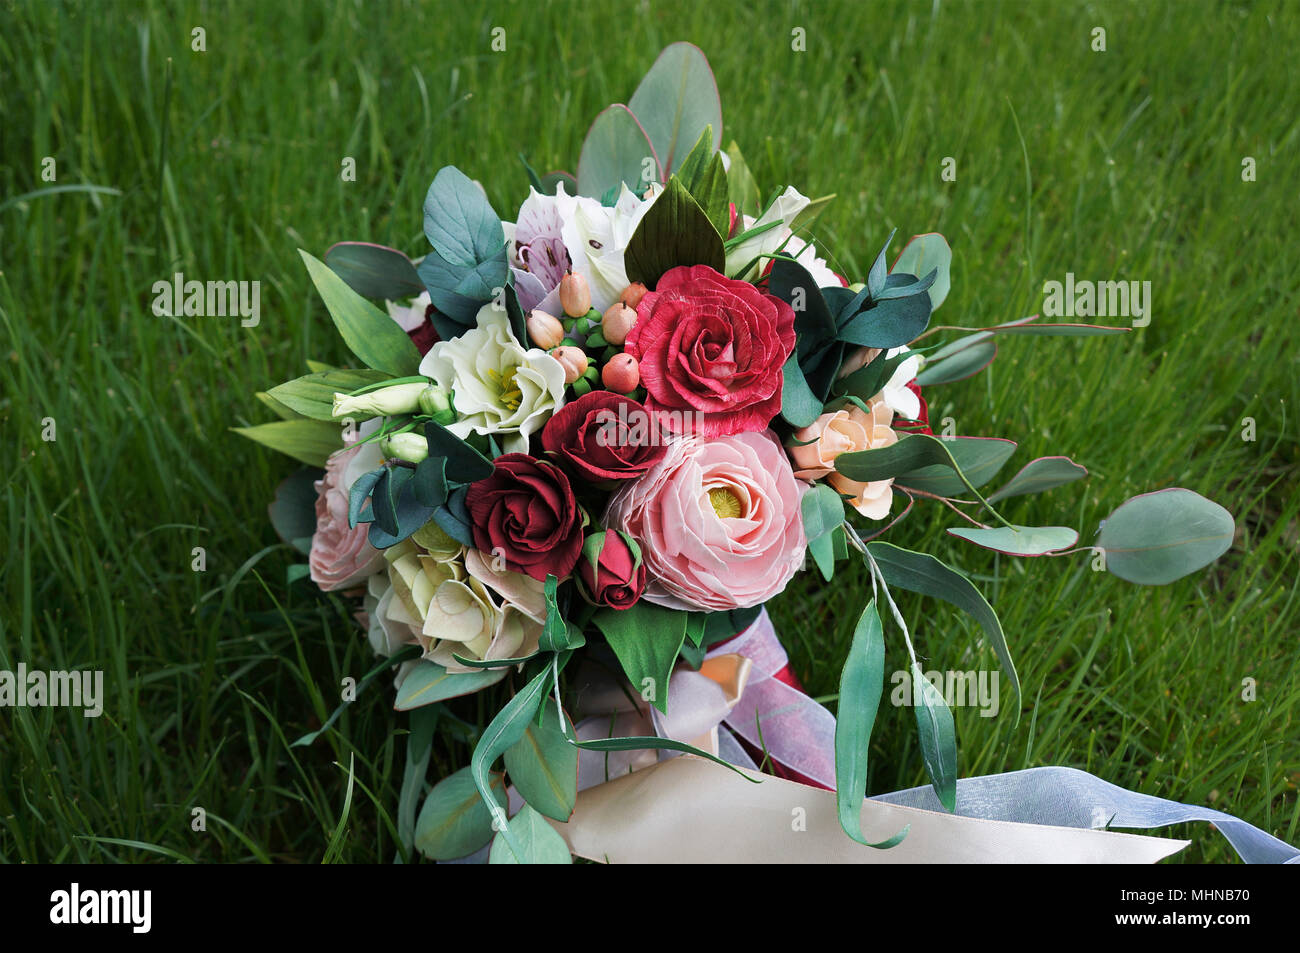 Artificial flowers made from sponge rubber. Bouquet for the bride. Foam-iran. Beautiful colorful wedding bouquet. Handmade flower fabric foamiran on t - Stock Image